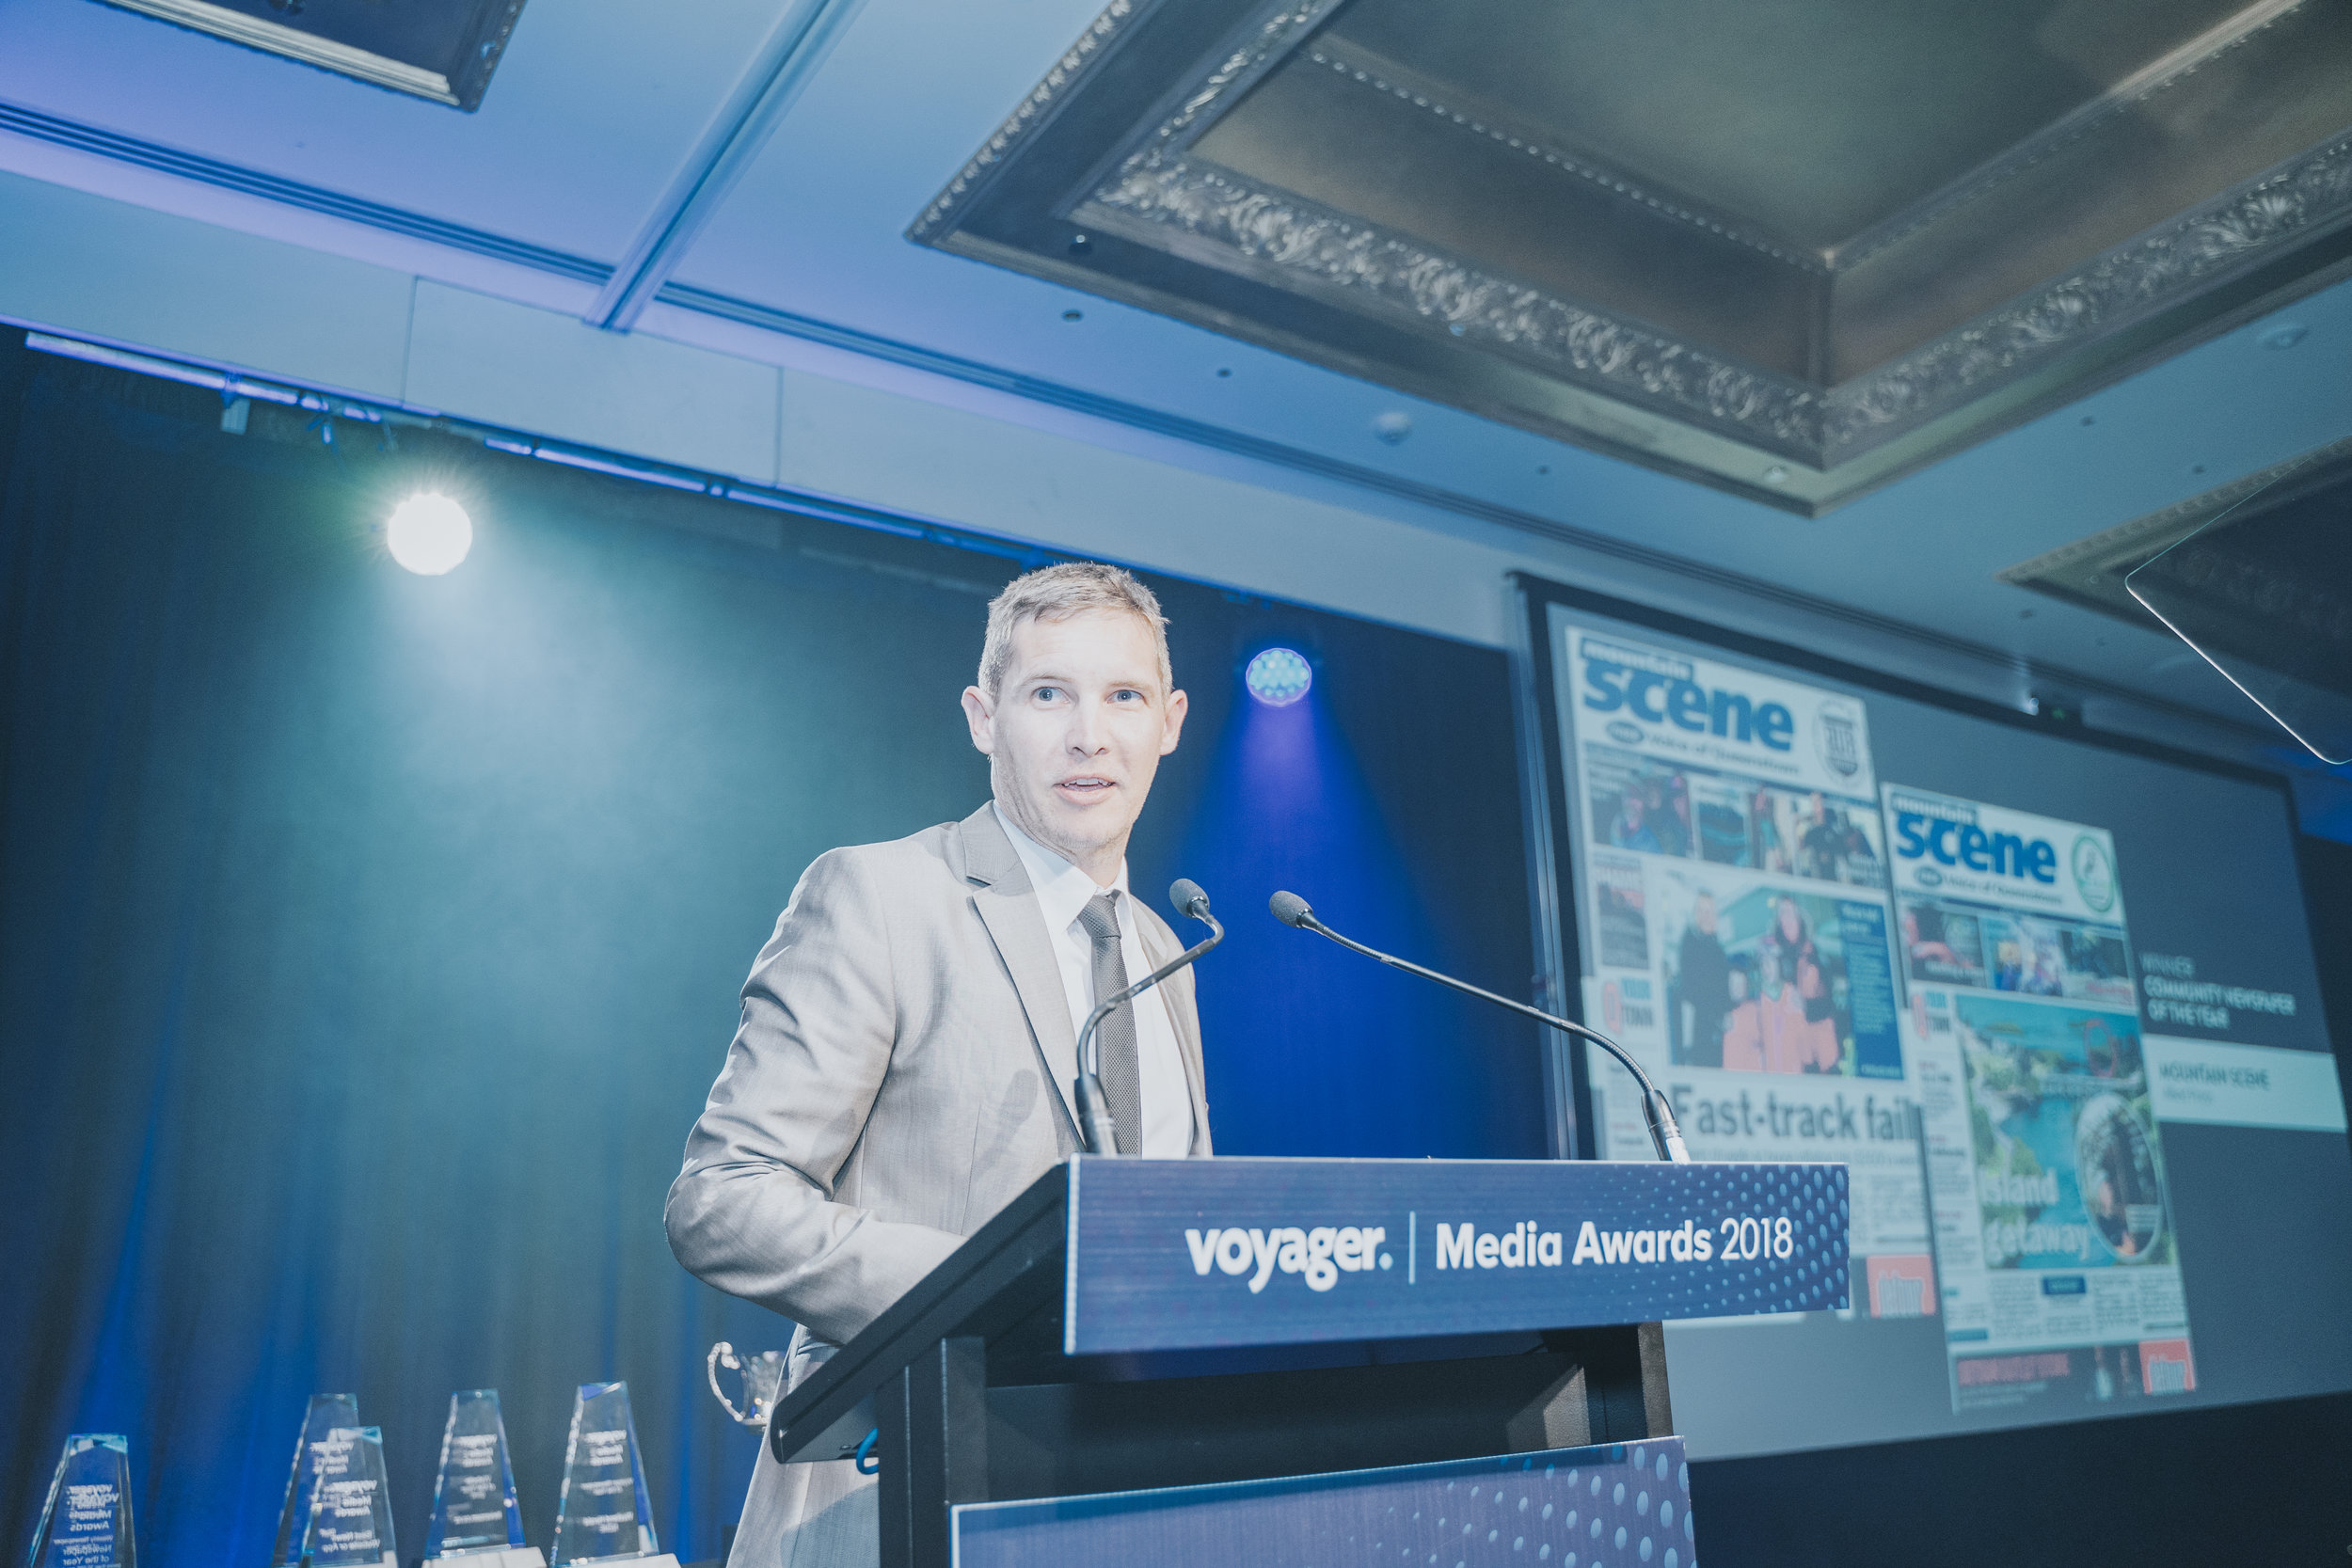 Voyager Media Awards 2018-371.JPG